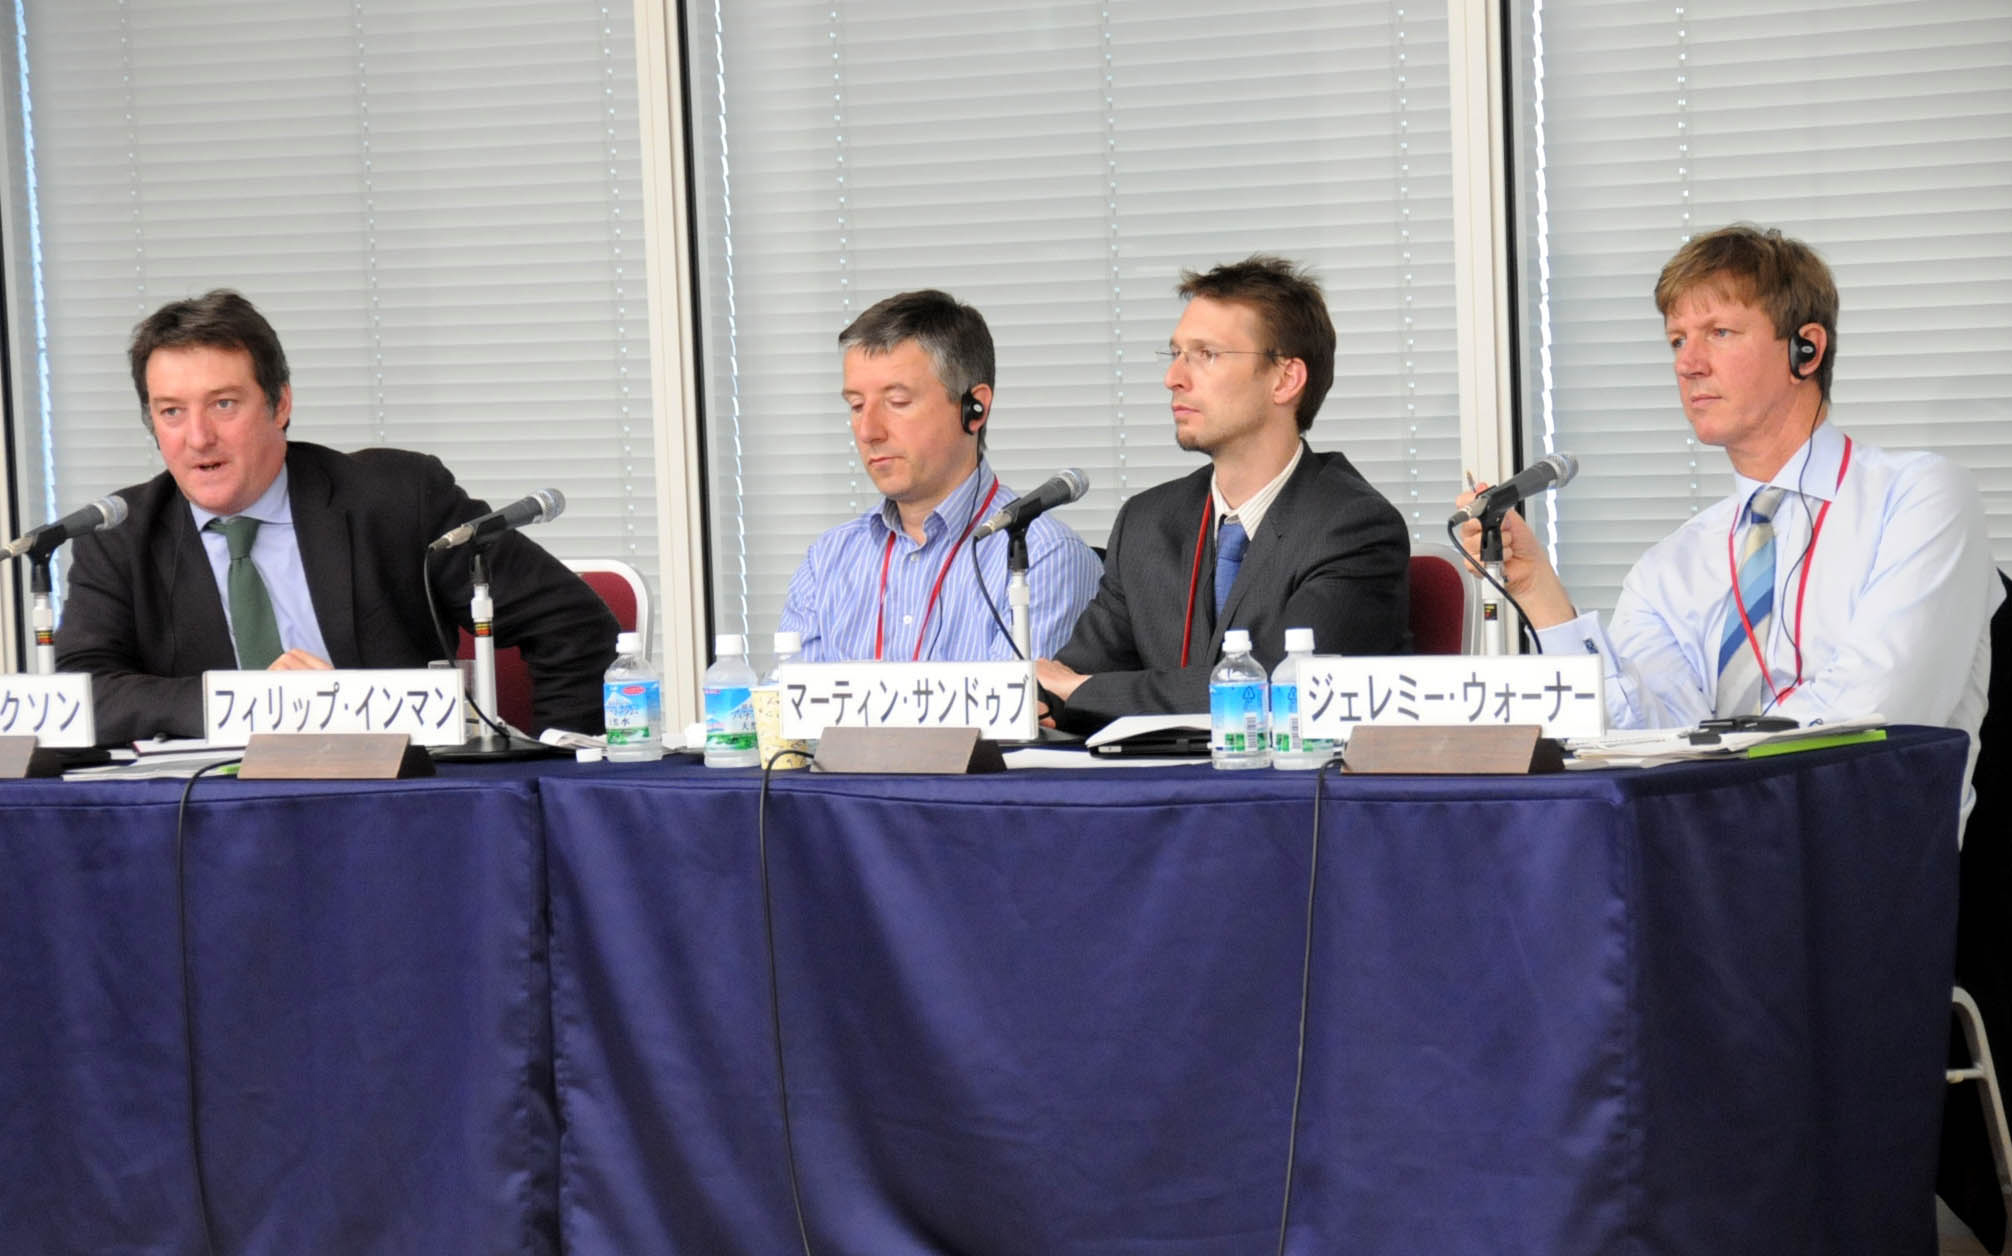 Journalists from Britain (from left) Simon Nixon, Phillip Inman, Martin Sandbu and Jeremy Warner discuss economic challenges for Japan and the United Kingdom during a symposium at Keidanren Kaikan in Tokyo on June 24. | SATOKO KAWASAKI